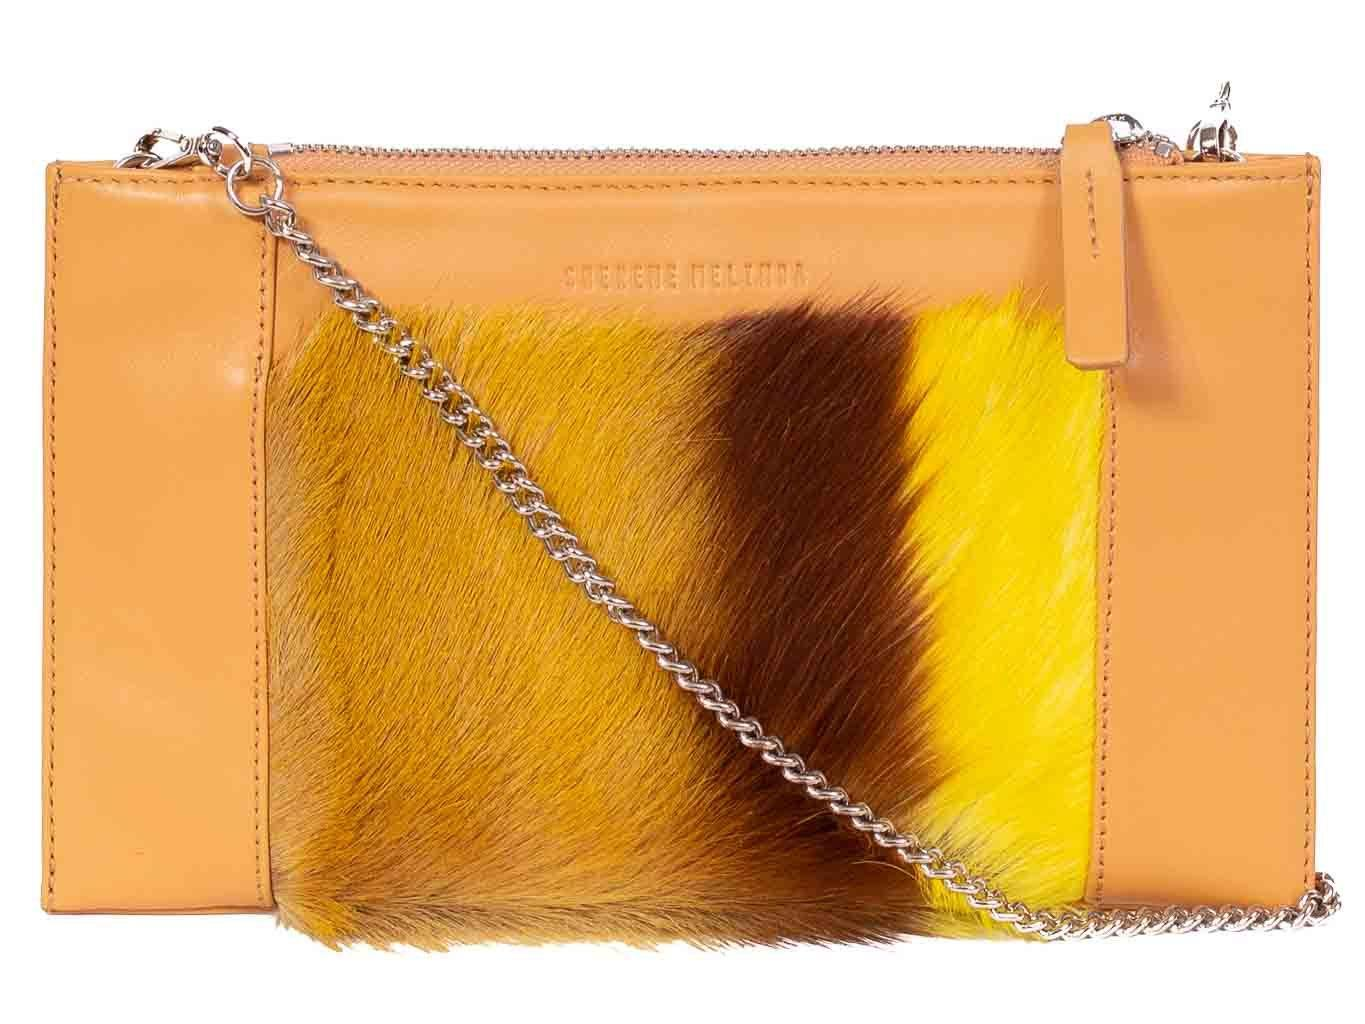 Clutch Springbok Handbag in Sunflower Yellow with a stripe feature by Sherene Melinda front strap